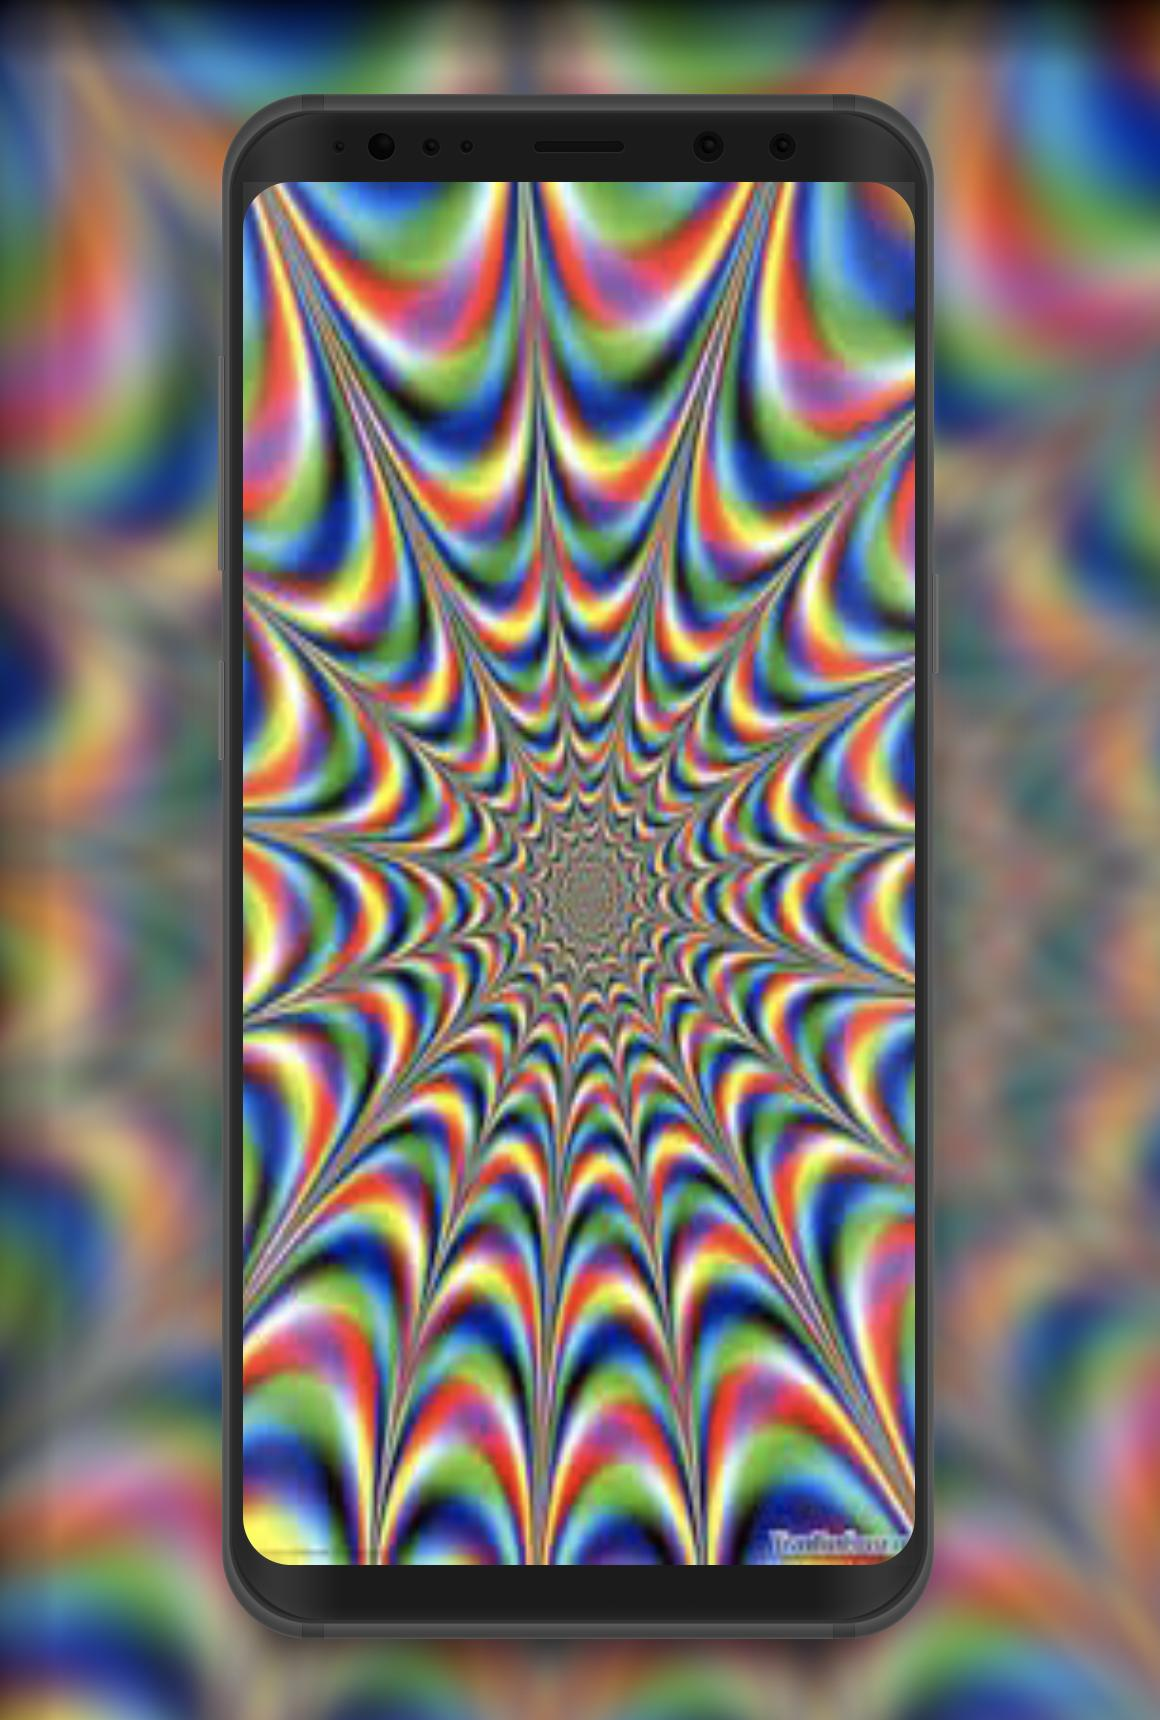 Trippy Wallpapers For Android Apk Download